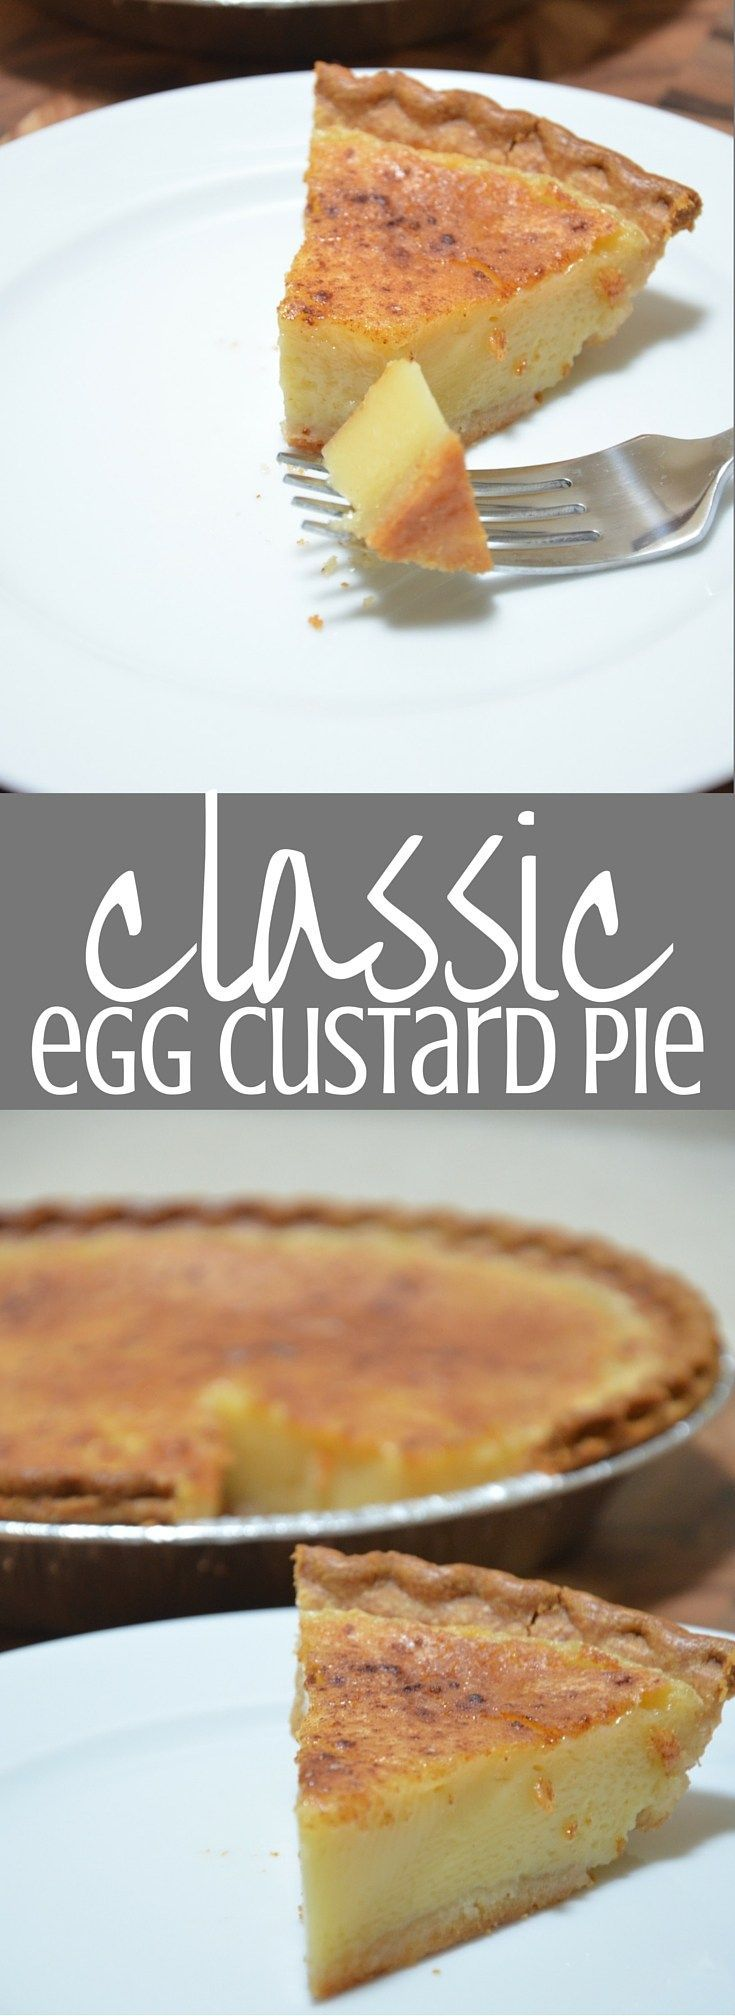 Egg Custard Pie. This is a favorite in our family - my mom makes it every year for Thanksgiving and everyone fights over it. Clickthrough for the full recipe and more great dessert ideas!